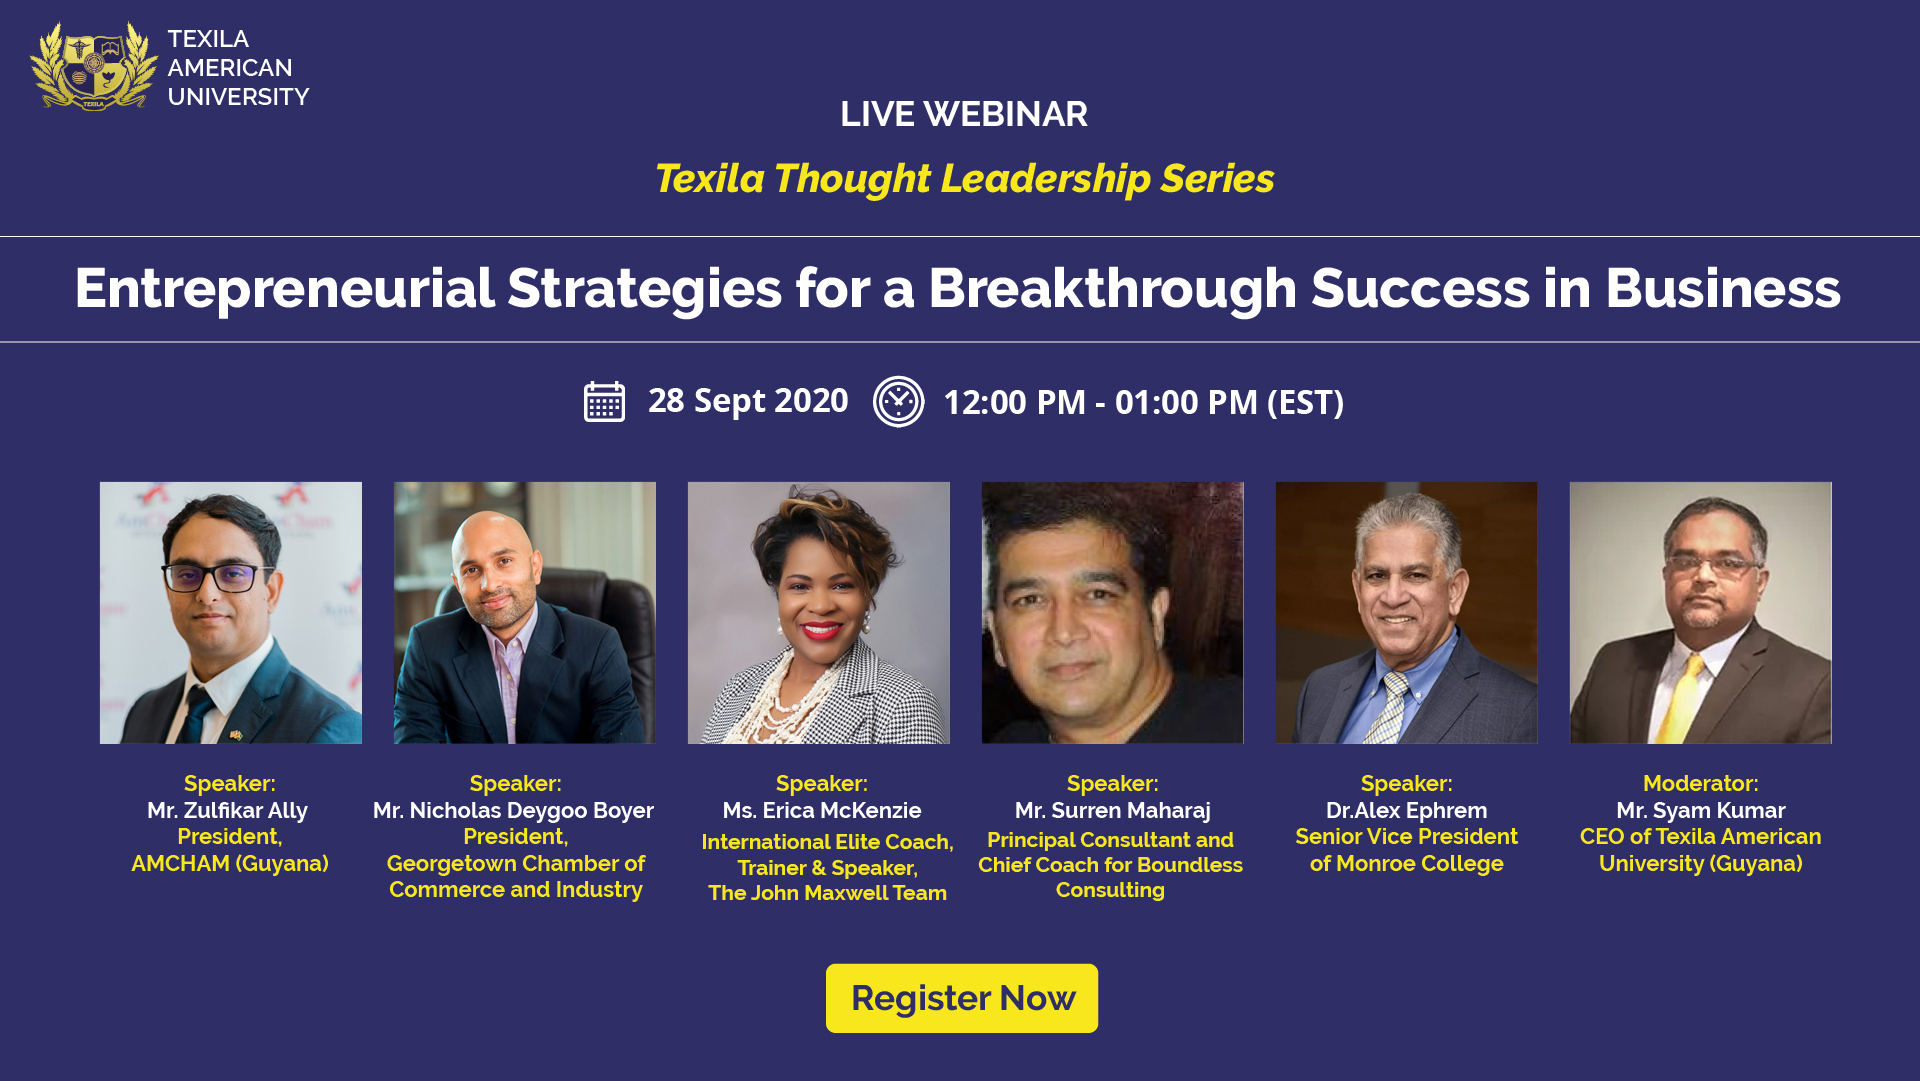 Entrepreneurial Strategies for a Breakthrough Success in Business